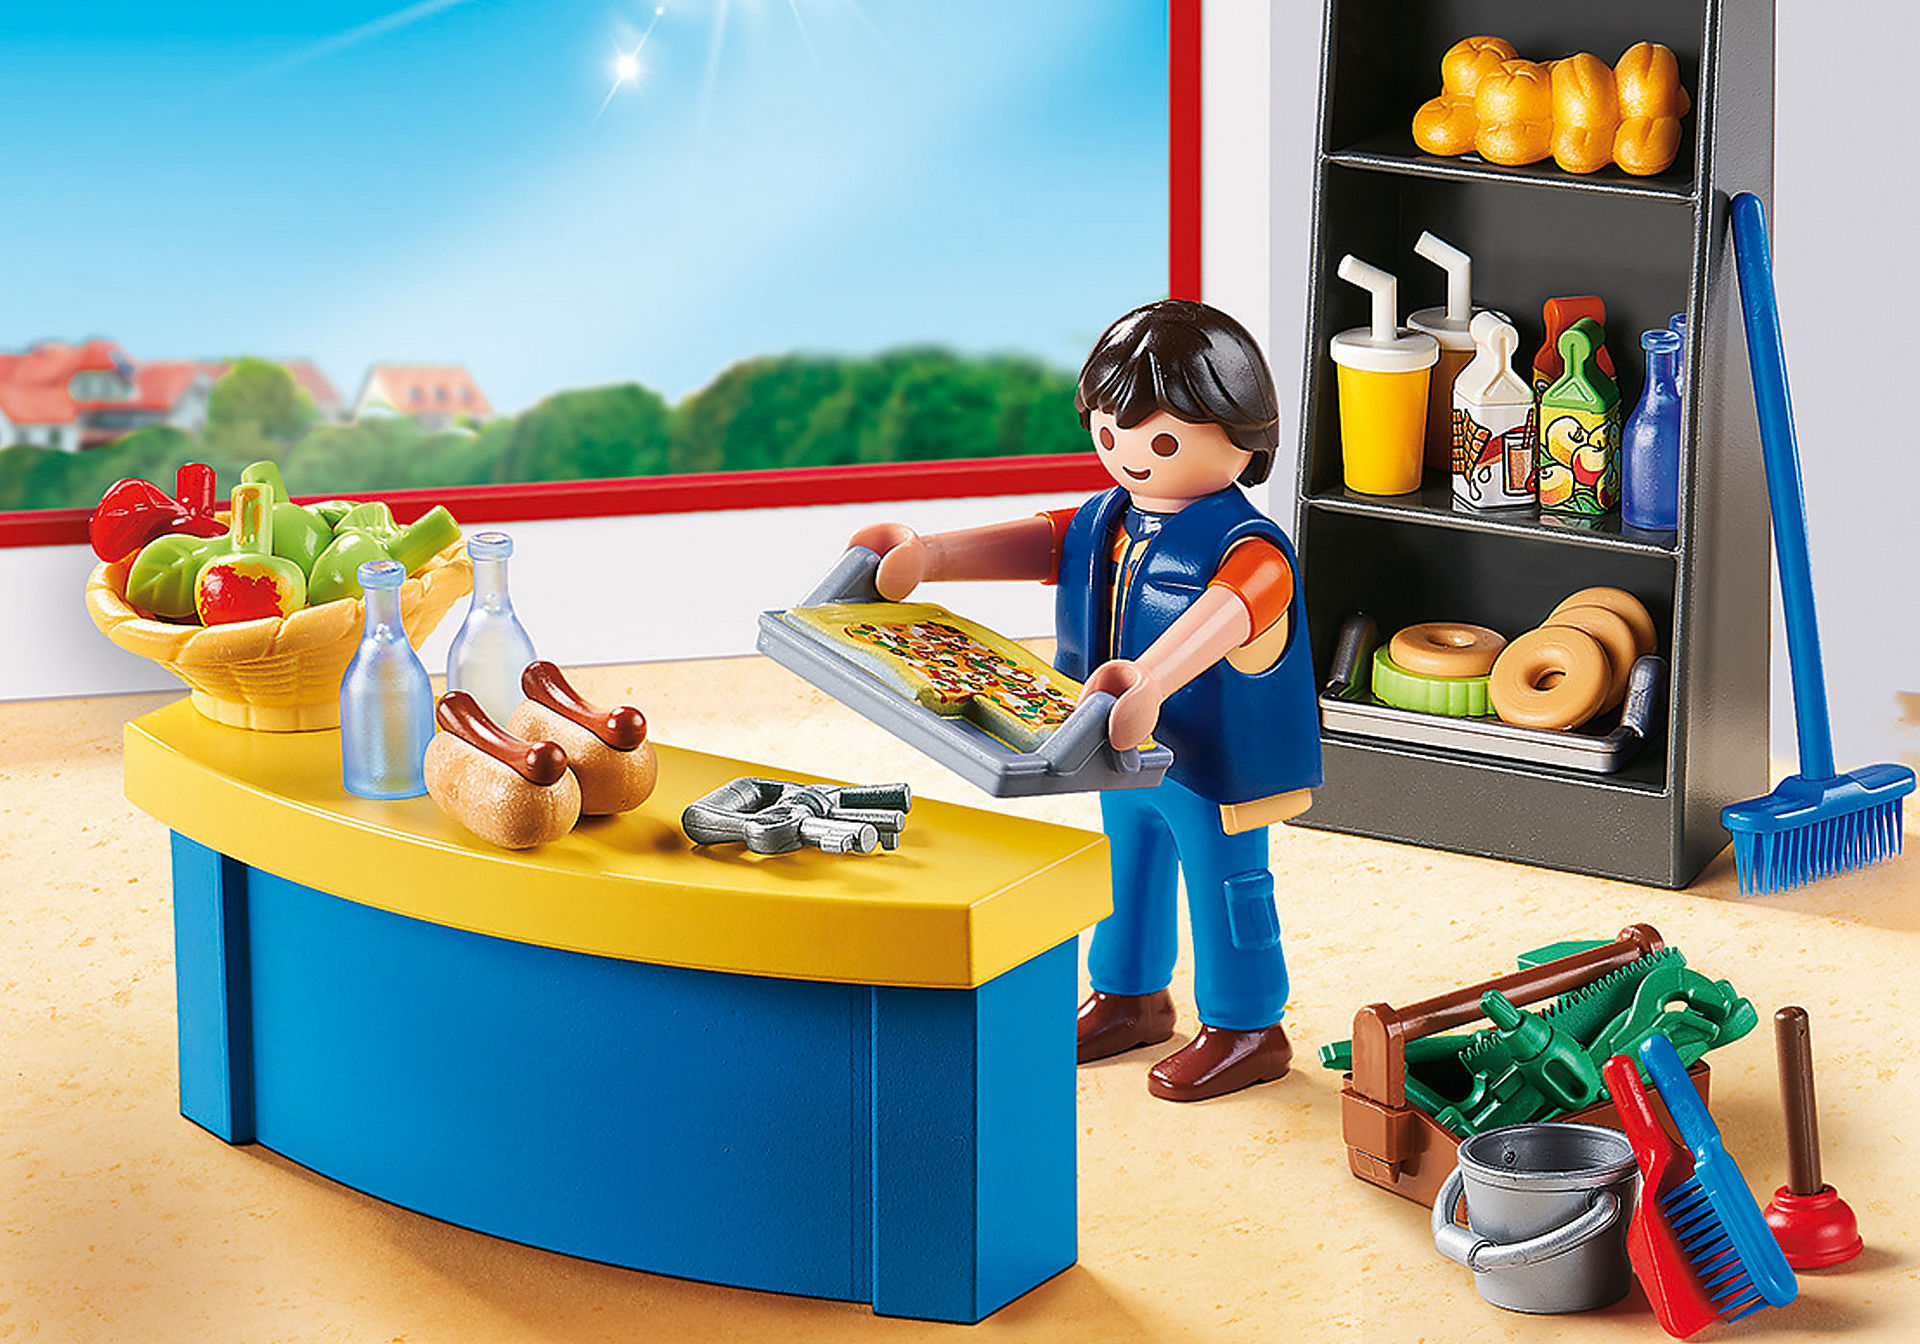 http://media.playmobil.com/i/playmobil/9457_product_detail/Surveillant avec boutique